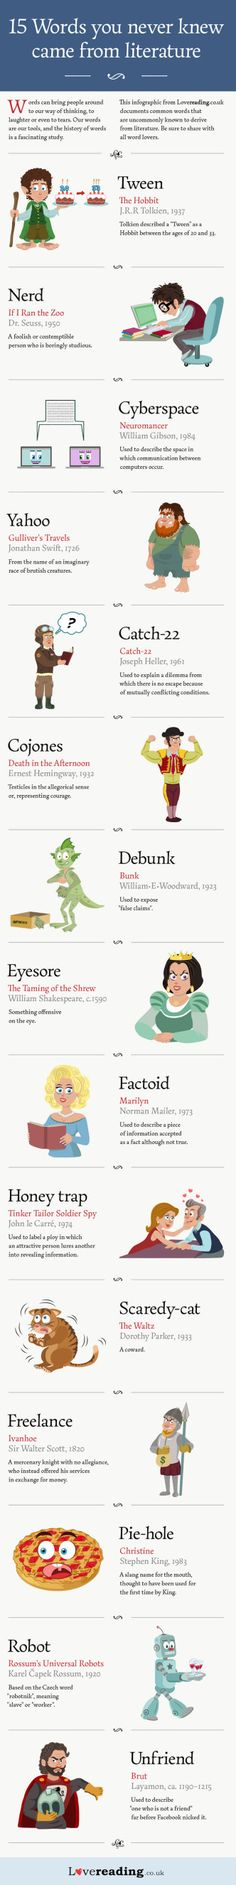 15 words you never knew came from literature - infographic